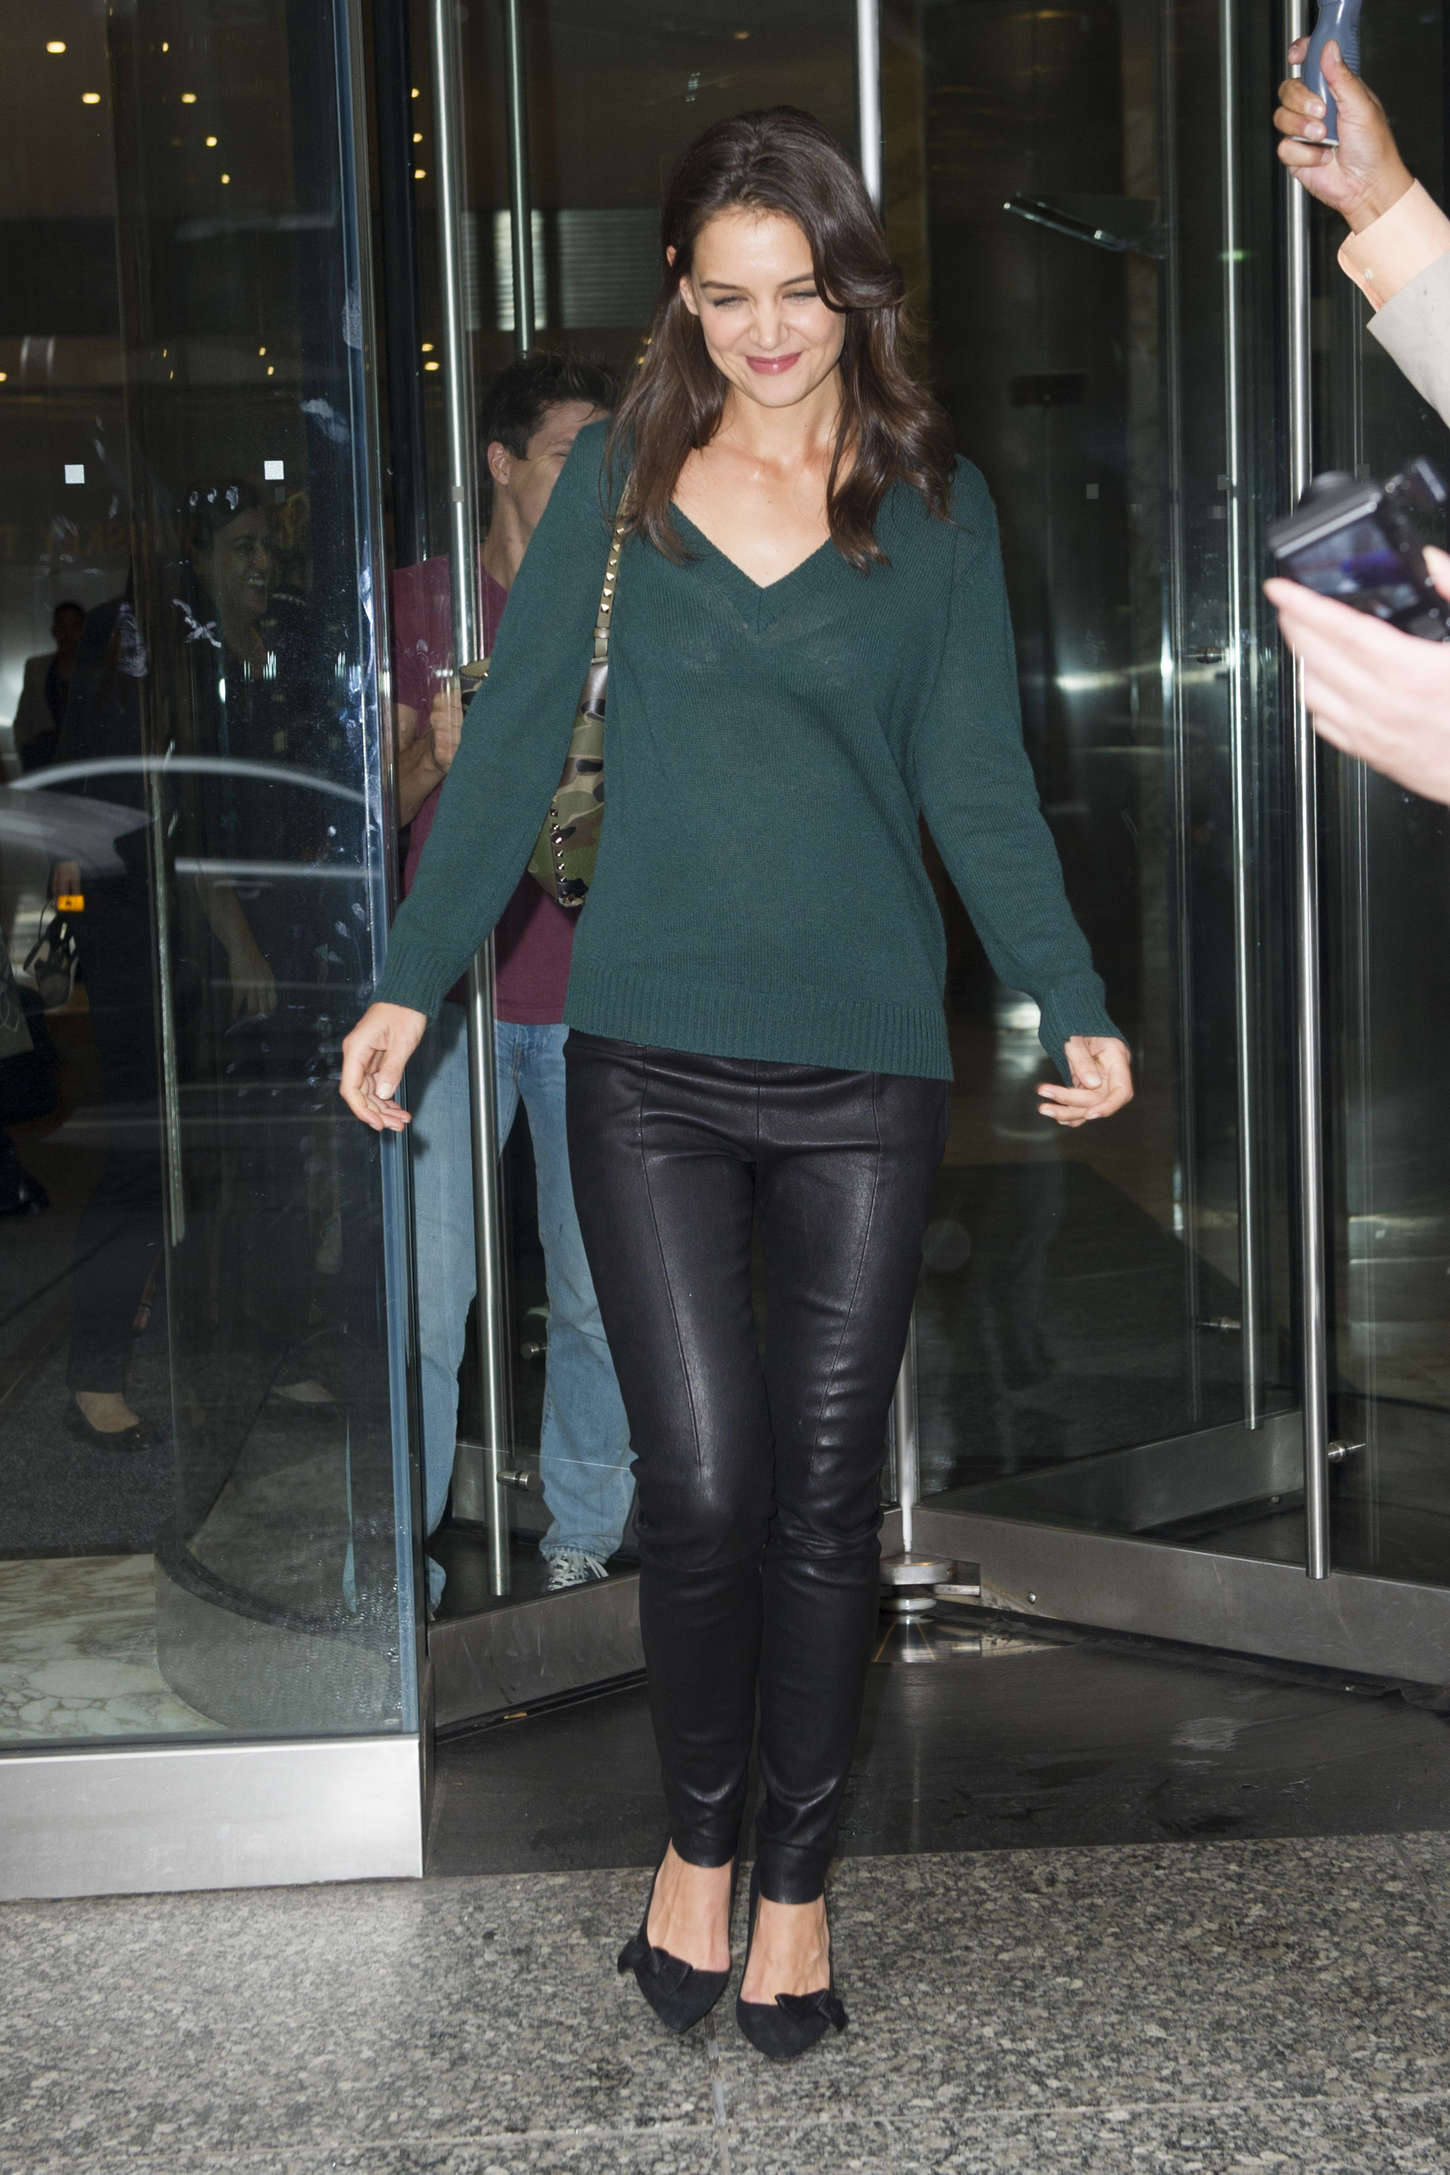 Katie Holmes In Leather Pants 09 GotCeleb